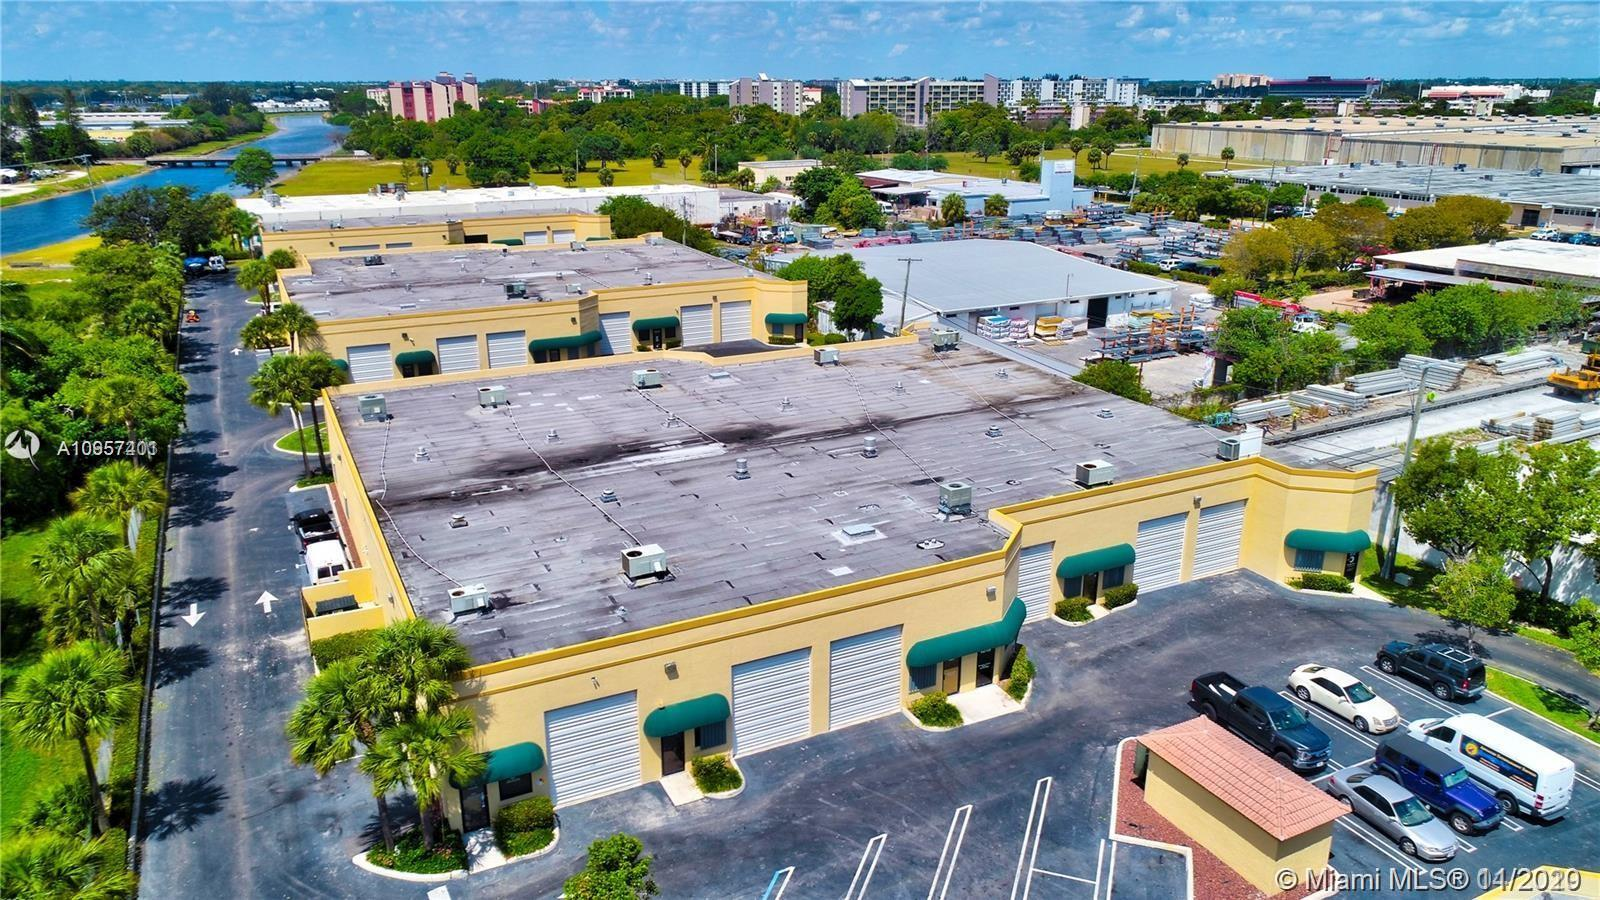 Excellent opportunity! Quiet warehouse complex in Pompano Beach safe and secure close to all major highways. This warehouse has a 12 x 14 door 69 feet deep 1266 ft.² with a bathroom and 20 foot ceilings. The community is zoned B3 can be used for small business or storage two assigned parking spots and very clean. Water and trash are included. Must See!